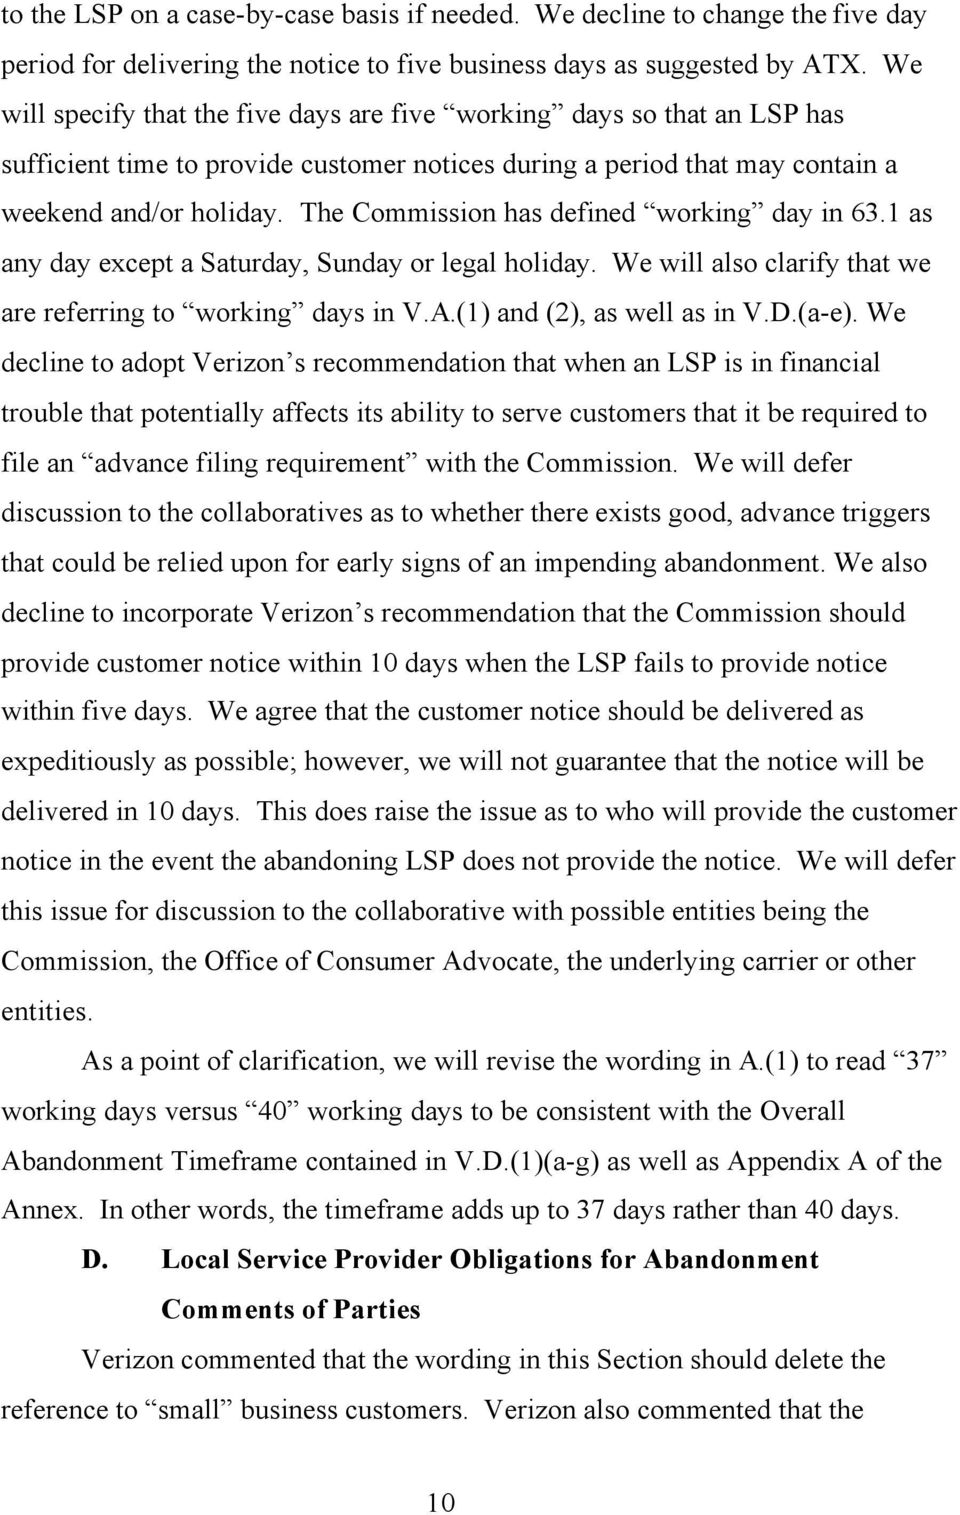 The Commission has defined working day in 63.1 as any day except a Saturday, Sunday or legal holiday. We will also clarify that we are referring to working days in V.A.(1) and (2), as well as in V.D.